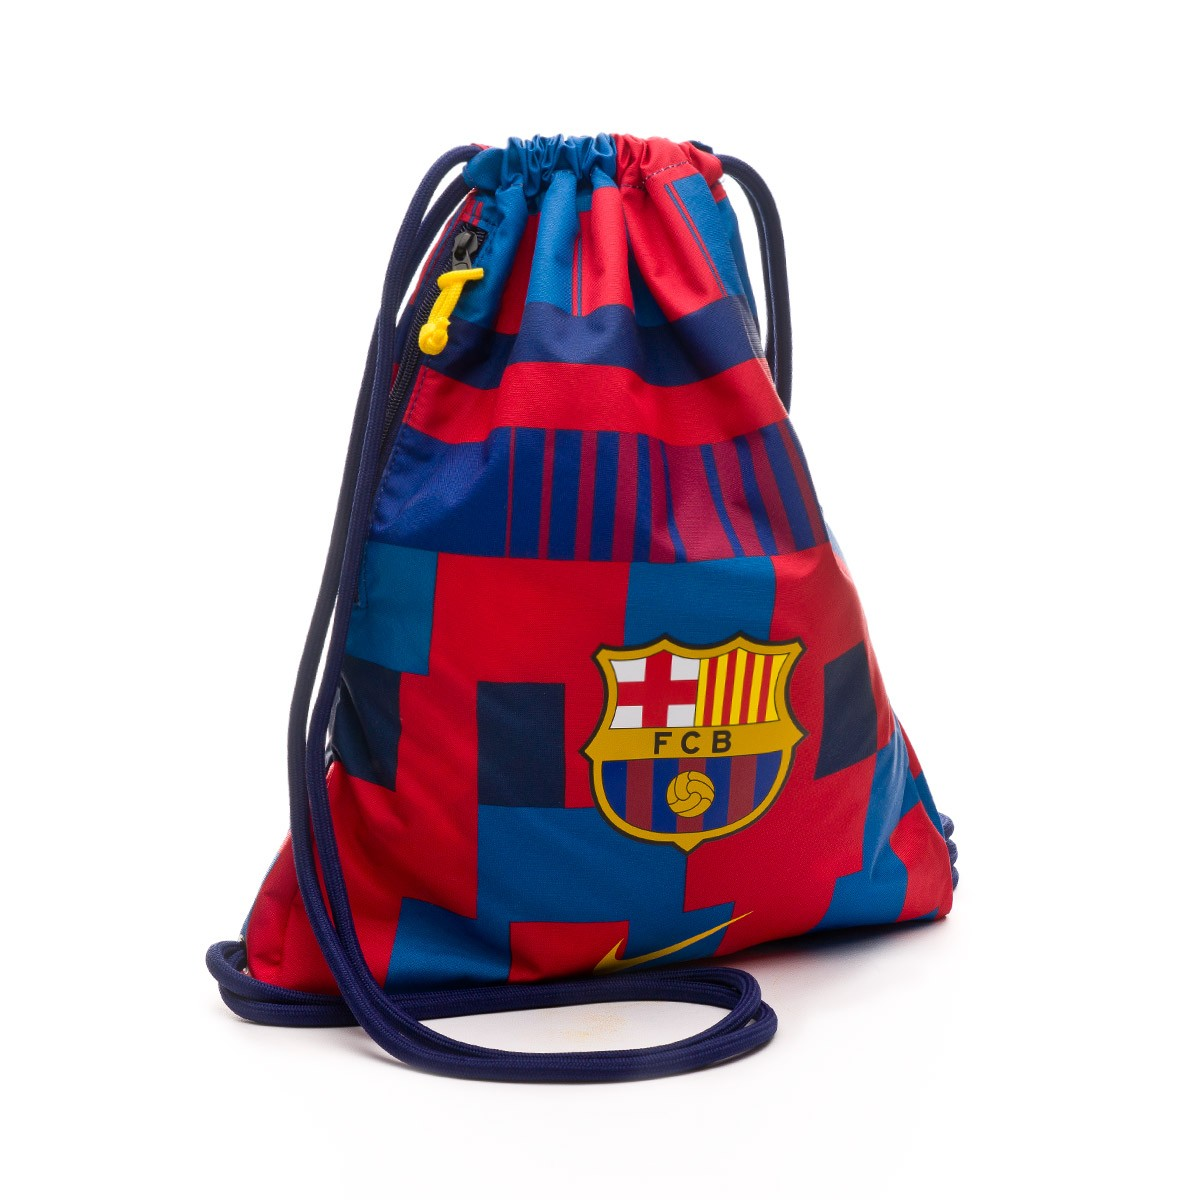 b7f074135 Mochila Nike Gymsack FC Barcelona Stadium 20 years Storm red-Storm  blue-Tour yellow - Tienda de fútbol Fútbol Emotion